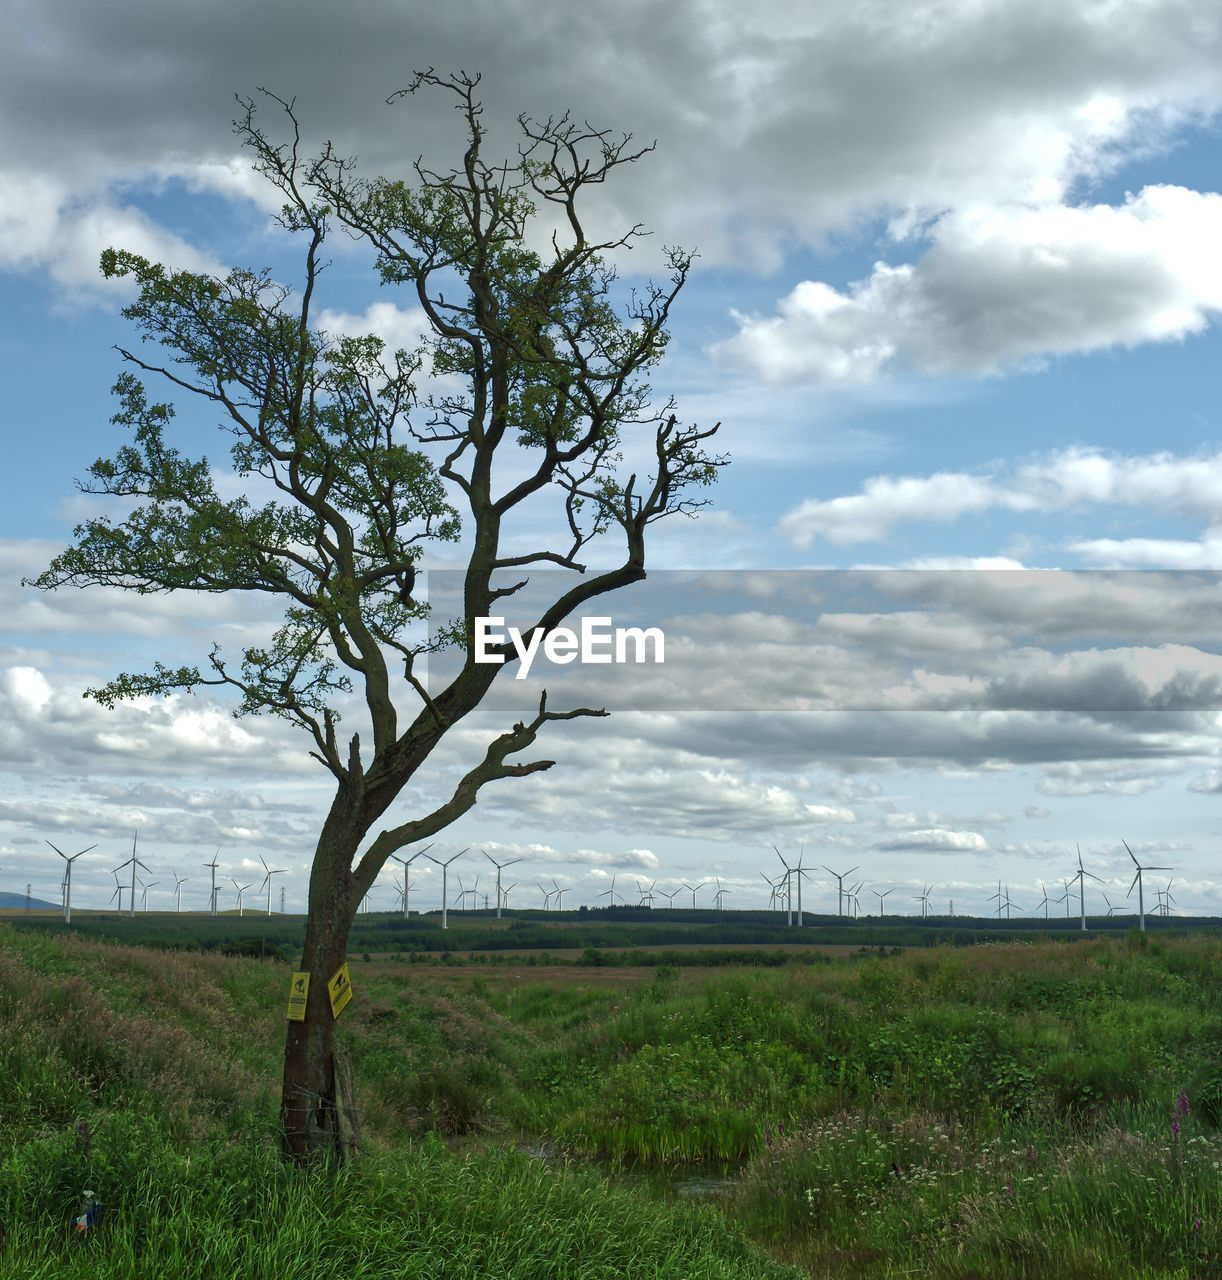 cloud - sky, sky, plant, environment, landscape, beauty in nature, land, tranquility, nature, tranquil scene, field, scenics - nature, non-urban scene, tree, grass, day, no people, fuel and power generation, growth, wind turbine, outdoors